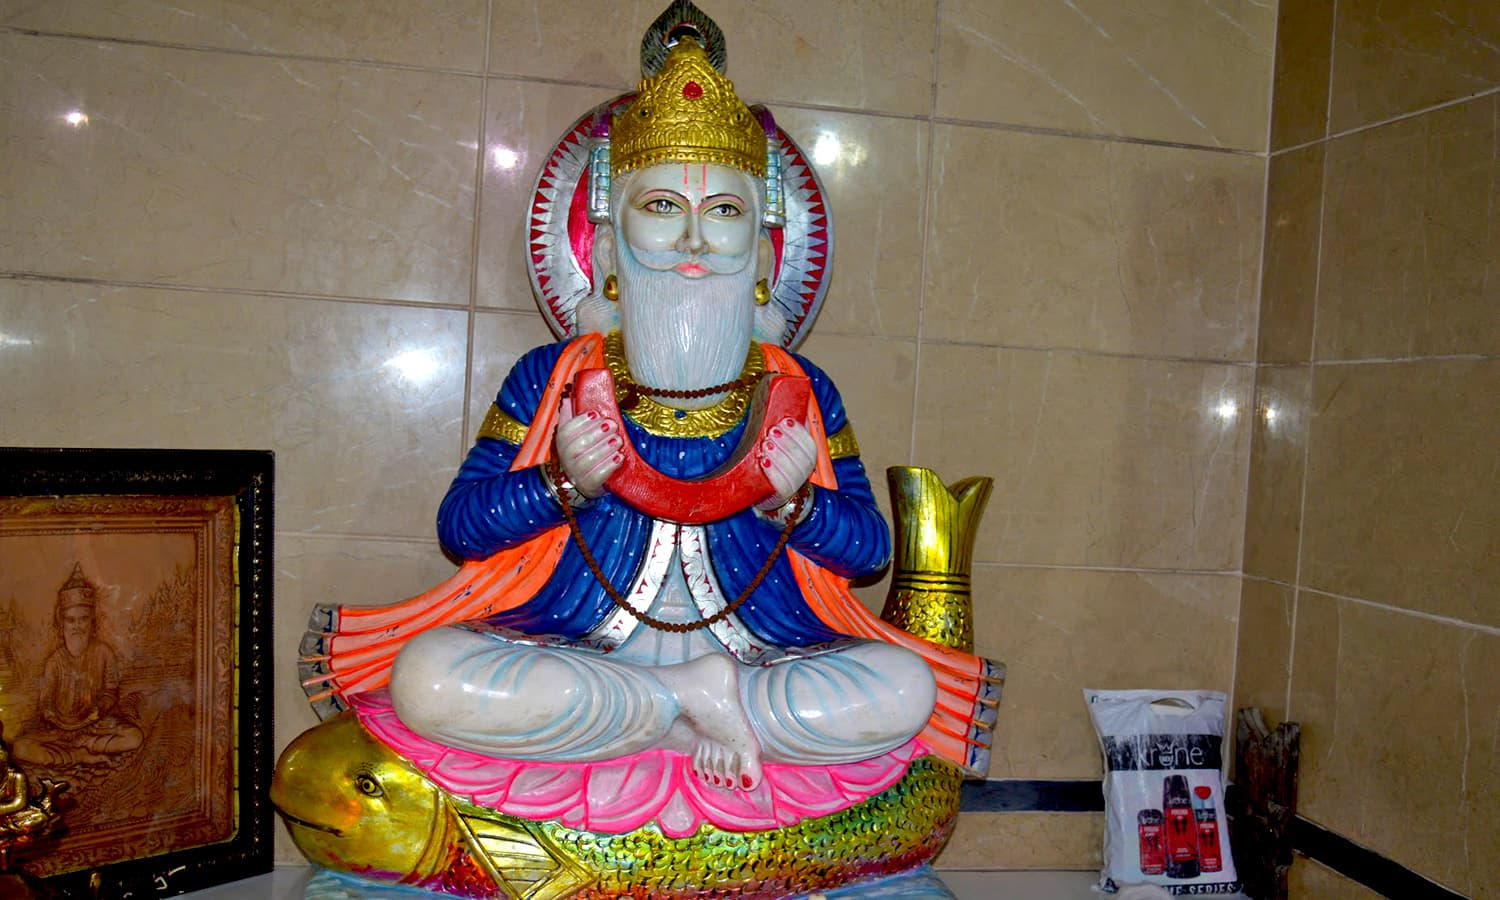 Jhulay Lal statue inside the Darya Lal temple in Karachi.